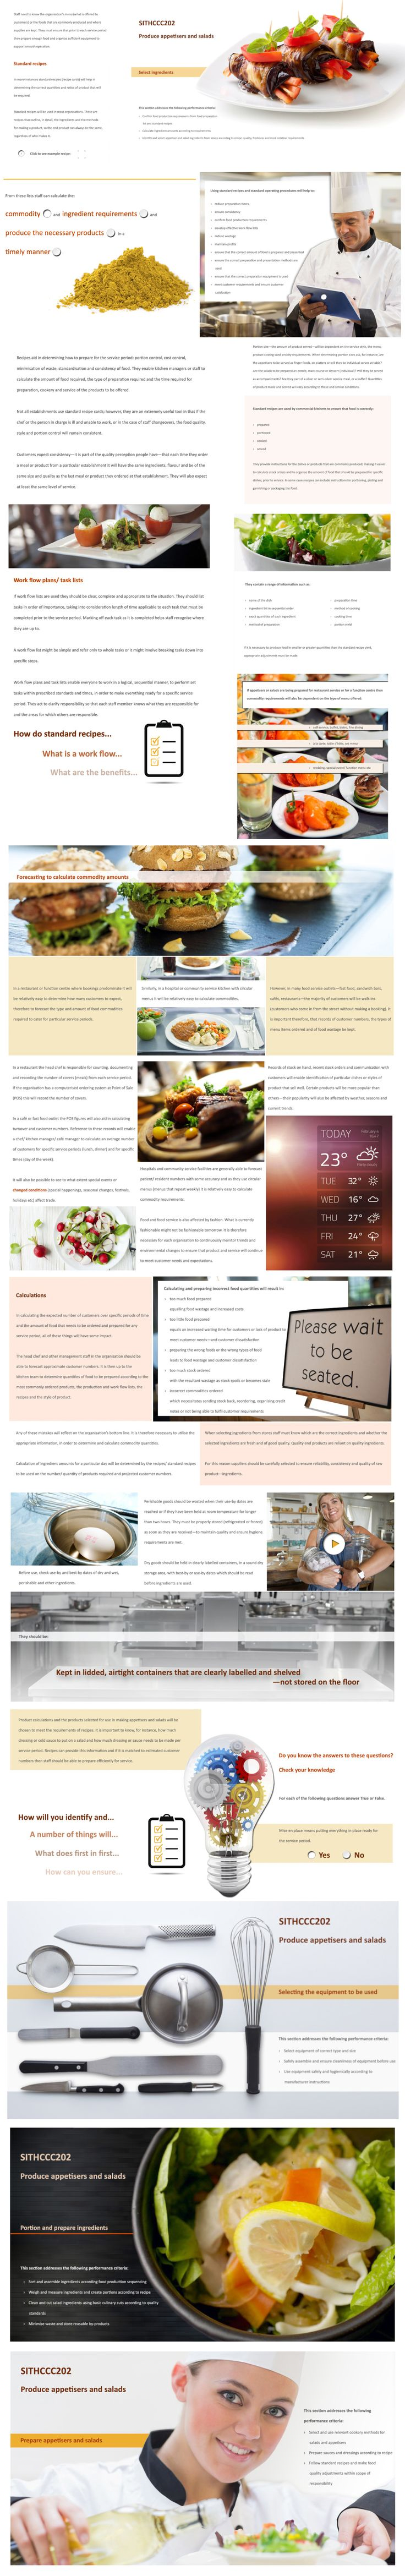 This is the content design to be implemented to current LMS. This is a print-ready design without any animations. Colours taken as default for Catapult with the style guide produced, but would change based on CSS for client. Design utilises white space, vertical text height & templates which are standardised. Design also incorporated multiple views, the intention to narrow content when required. Criteria pages are stylised & attractive, to lead into subject matter but still following…